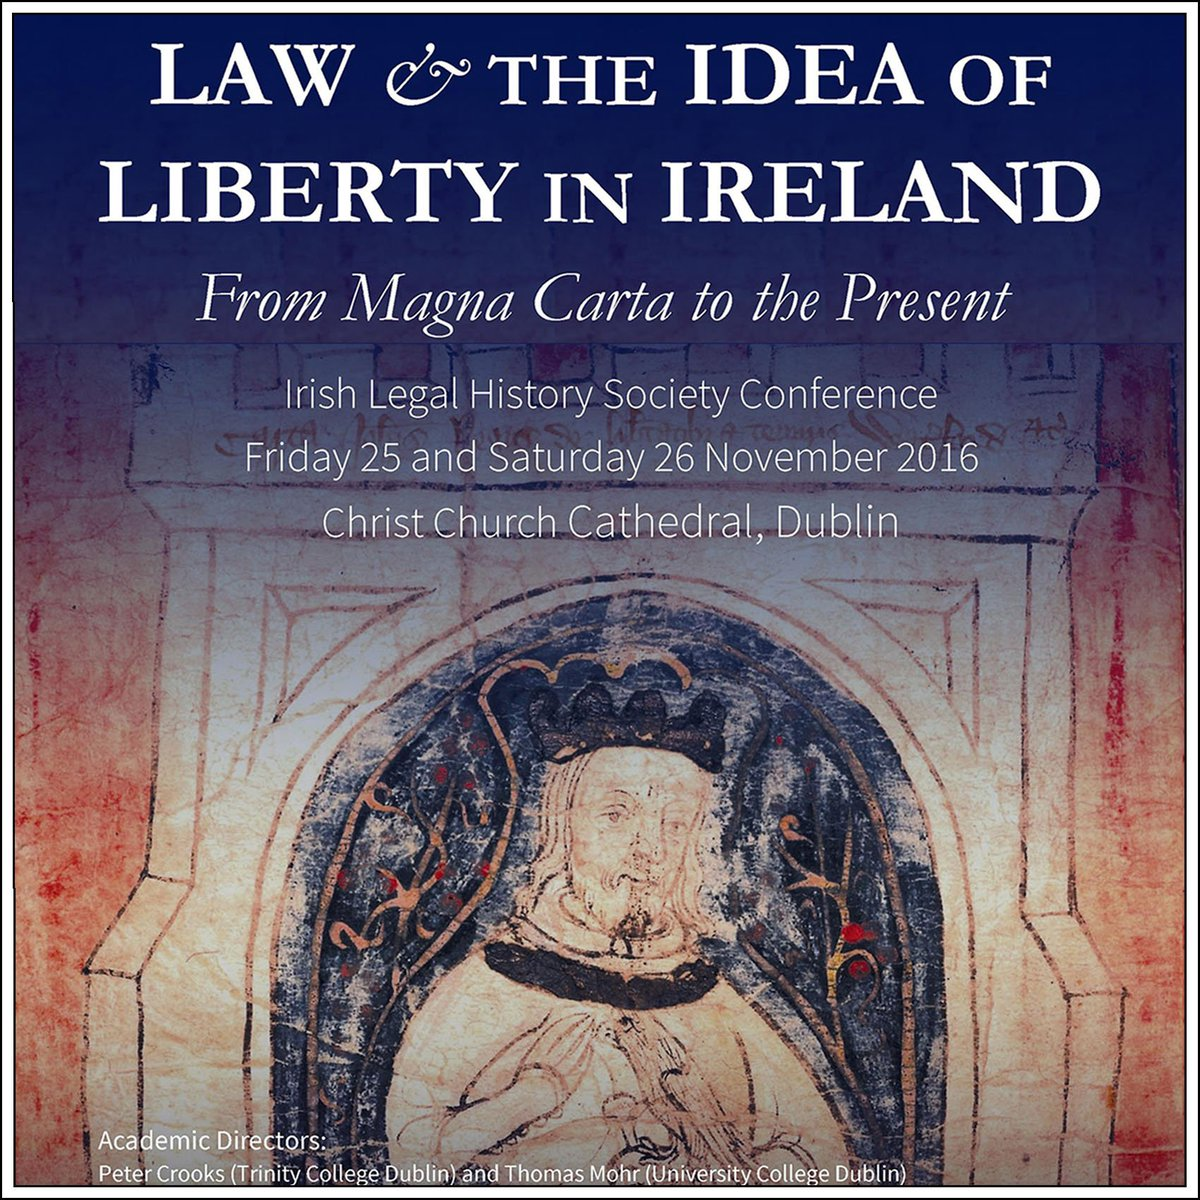 Magna carta 800th magnacarta800th twitter of liberty in ireland from magna carta to the present httpucdhumanitieseventspodcasts2016ilhs magna carta picitterfnbb3lajvc malvernweather Image collections